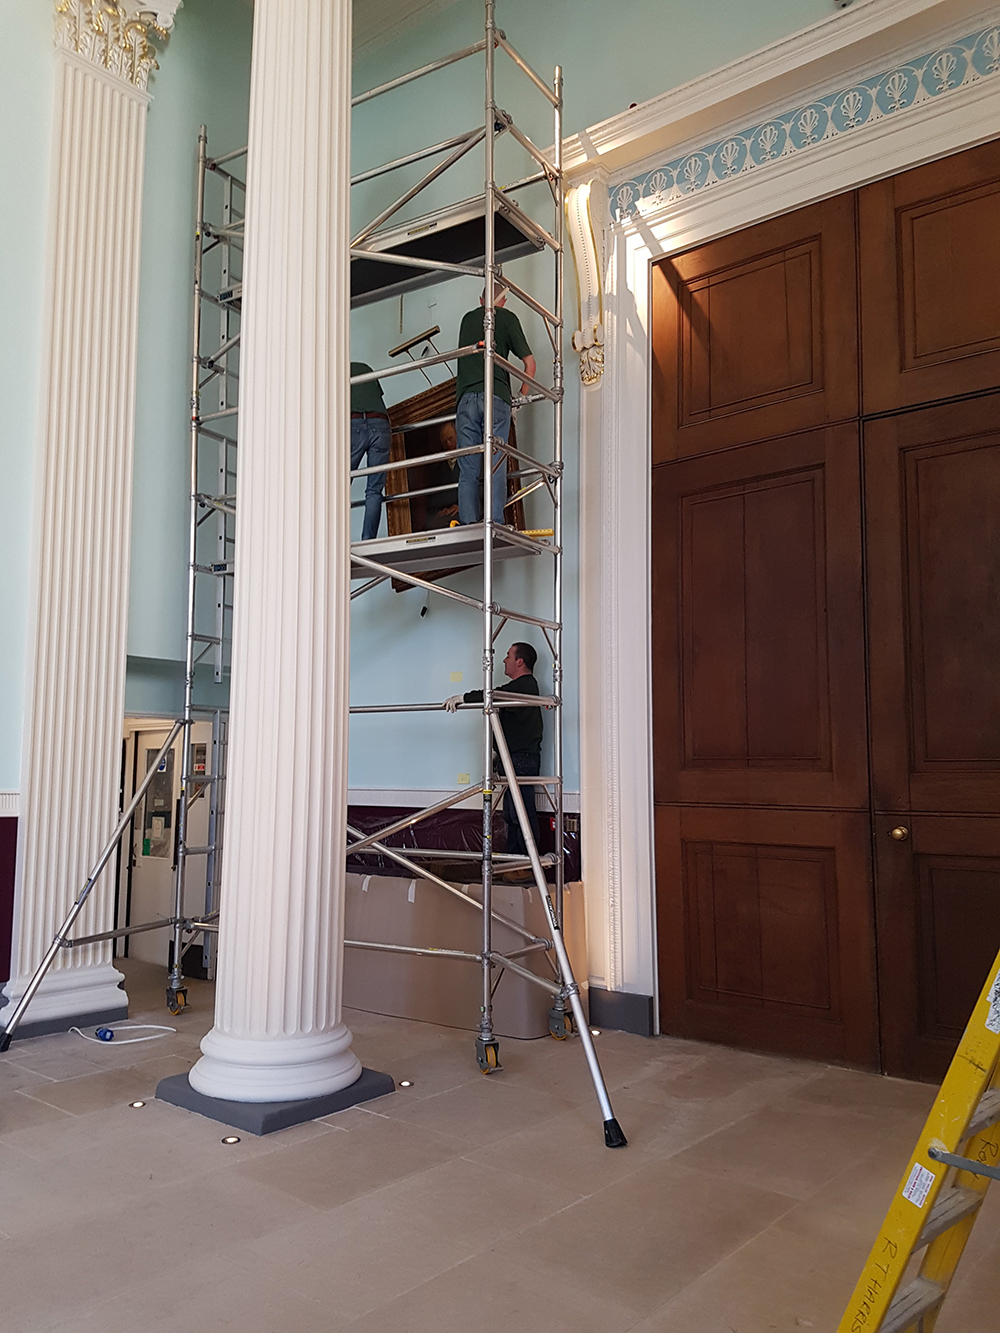 worcester college oxford paintings being hung with hogarth picture lights attached